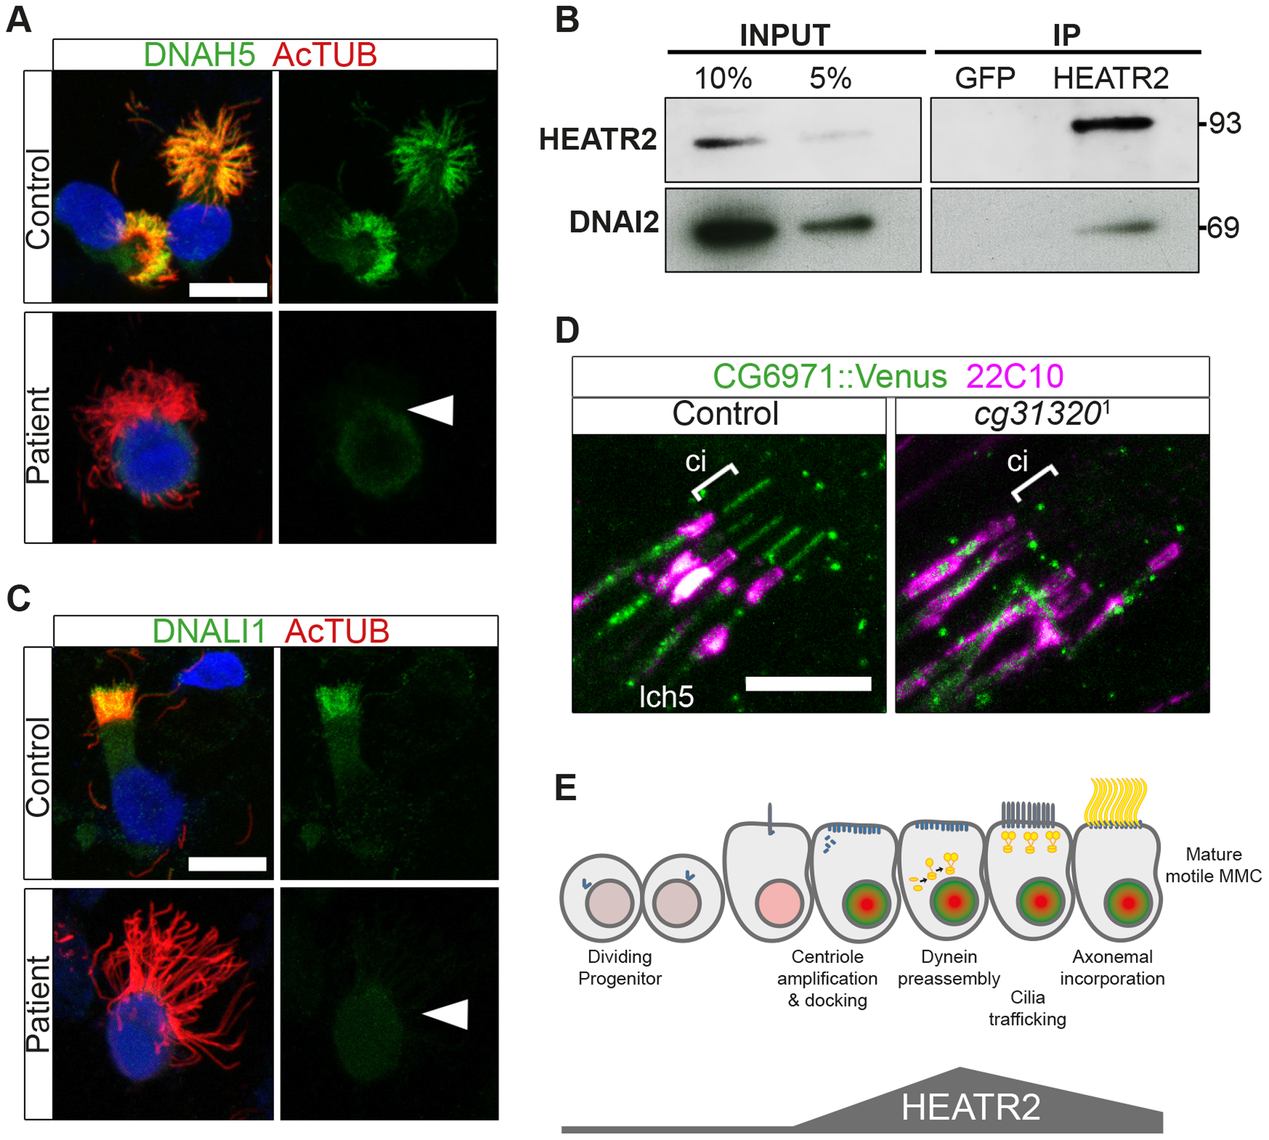 Cytoplasmic HEATR2 is required for the pre-assembly of axonemal dynein machinery necessary for motility.